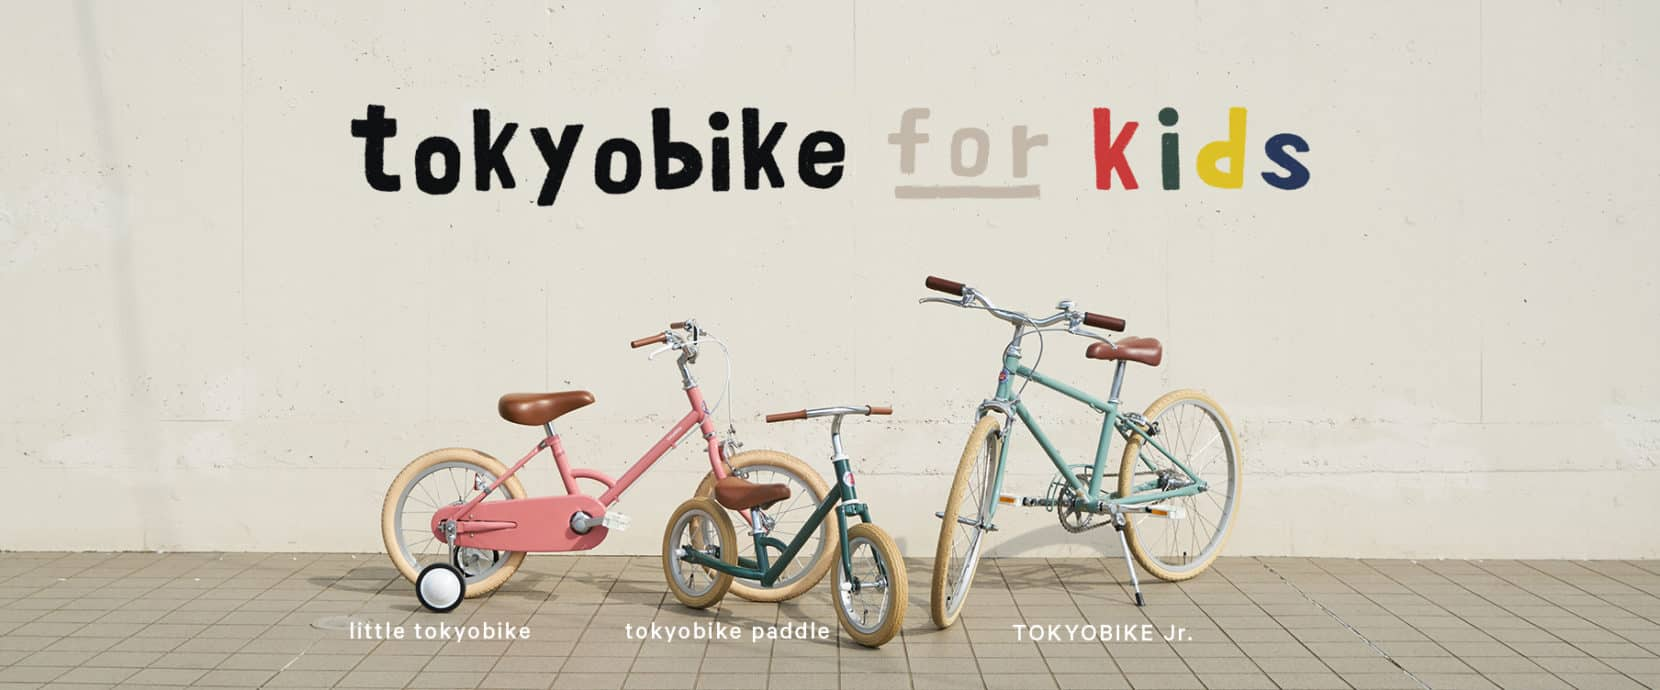 tokyobike paddle for kids